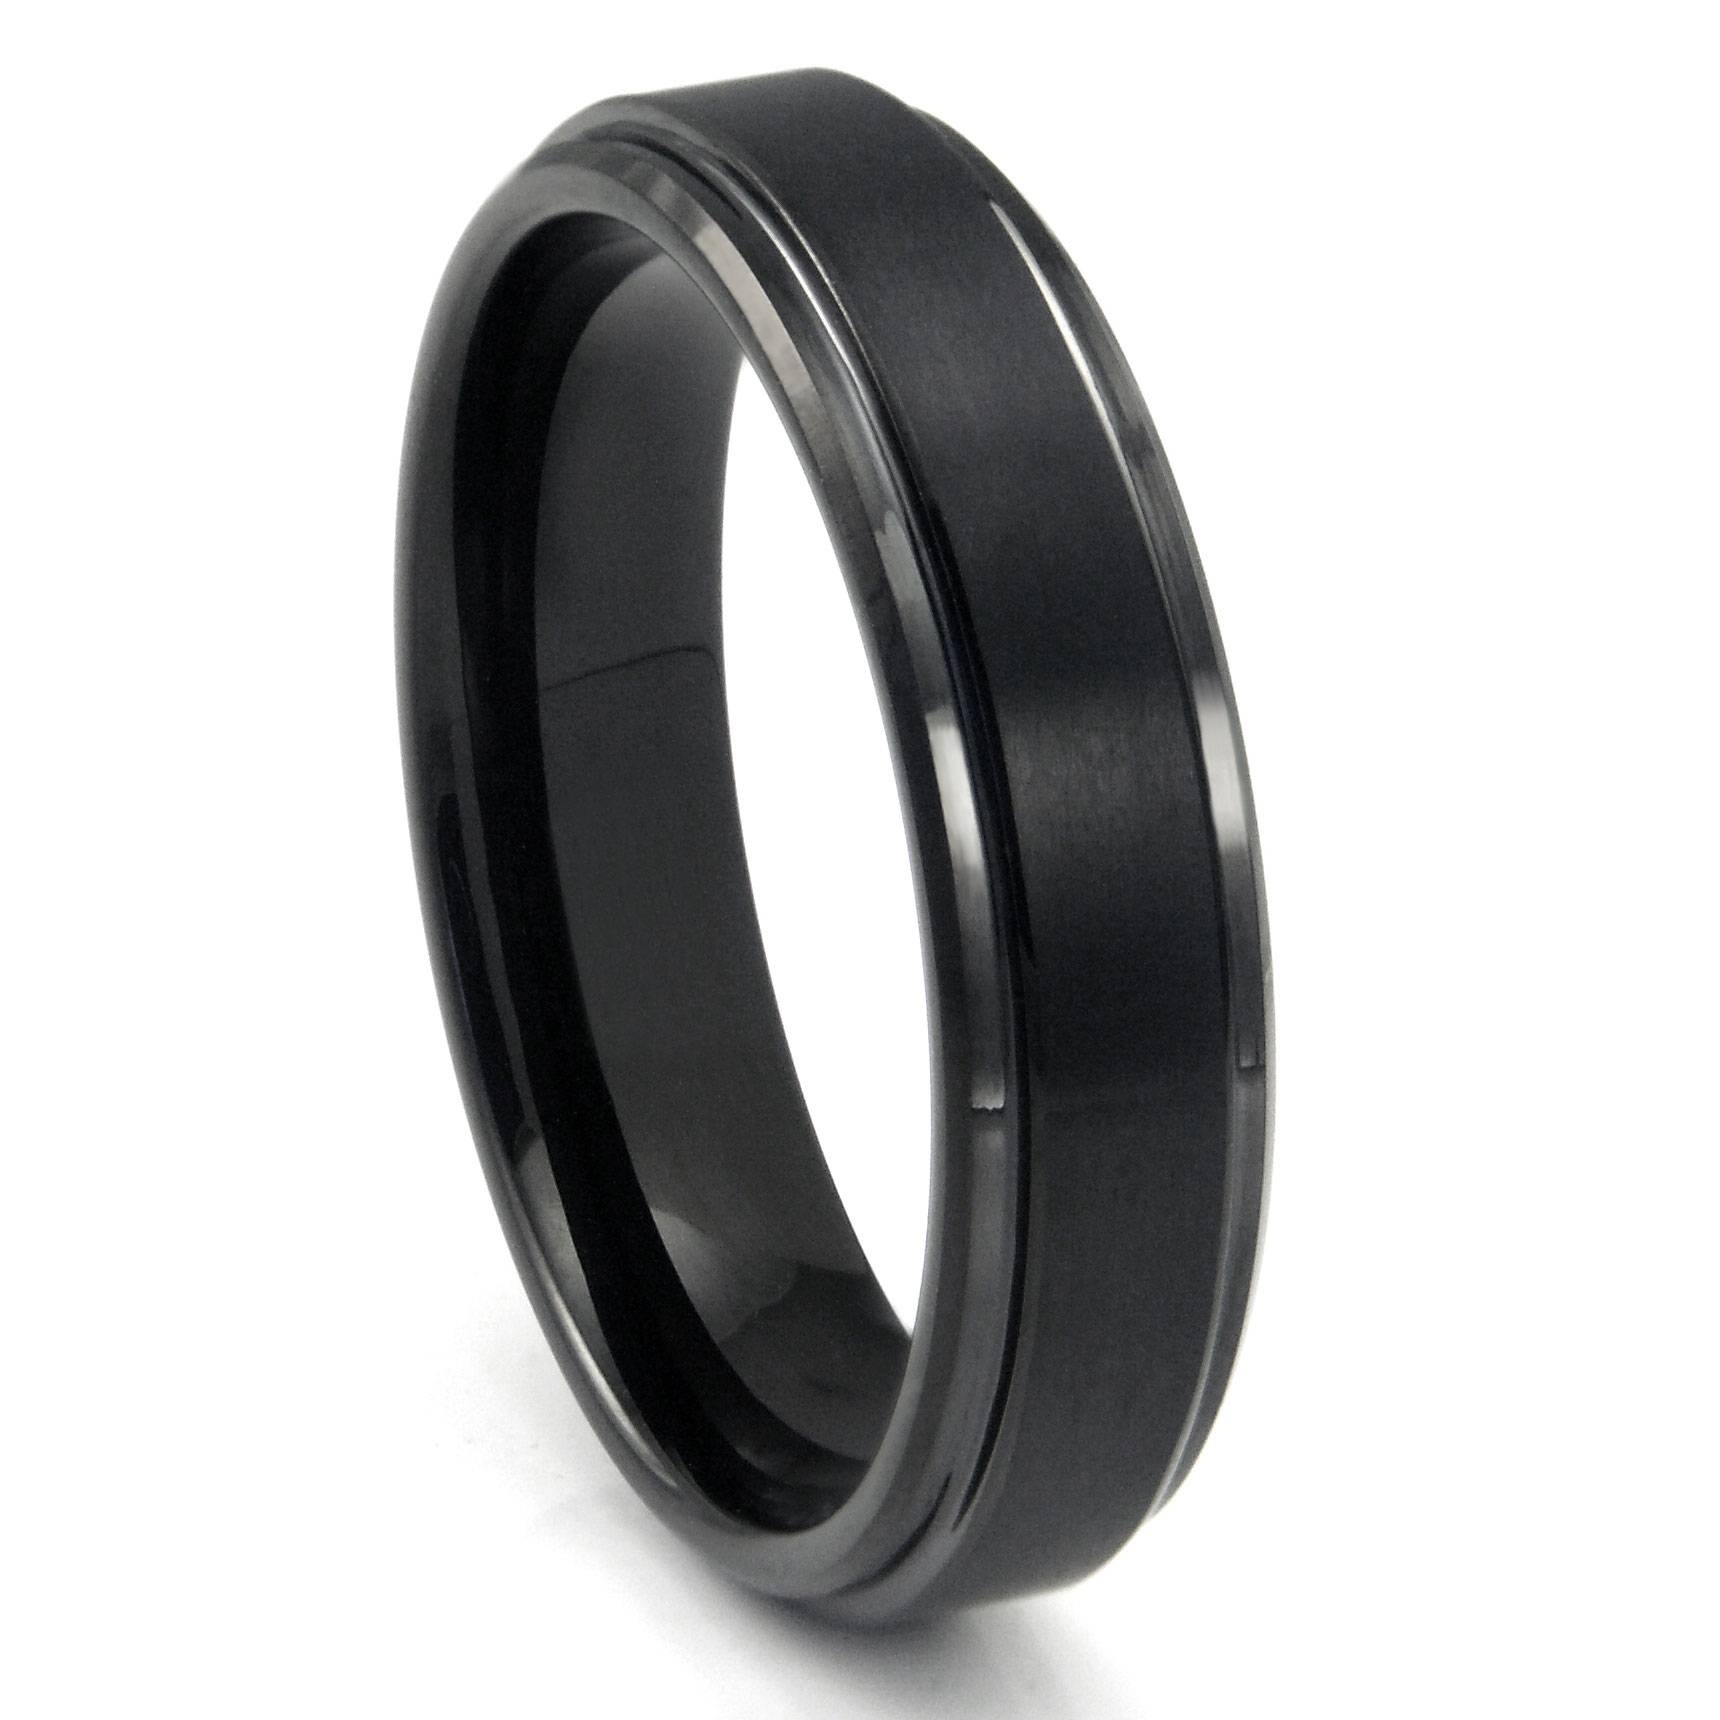 Black Tungsten Rings Mens Wedding Jewelry – Titanium Kay Pertaining To Matte Black Mens Wedding Bands (View 12 of 15)